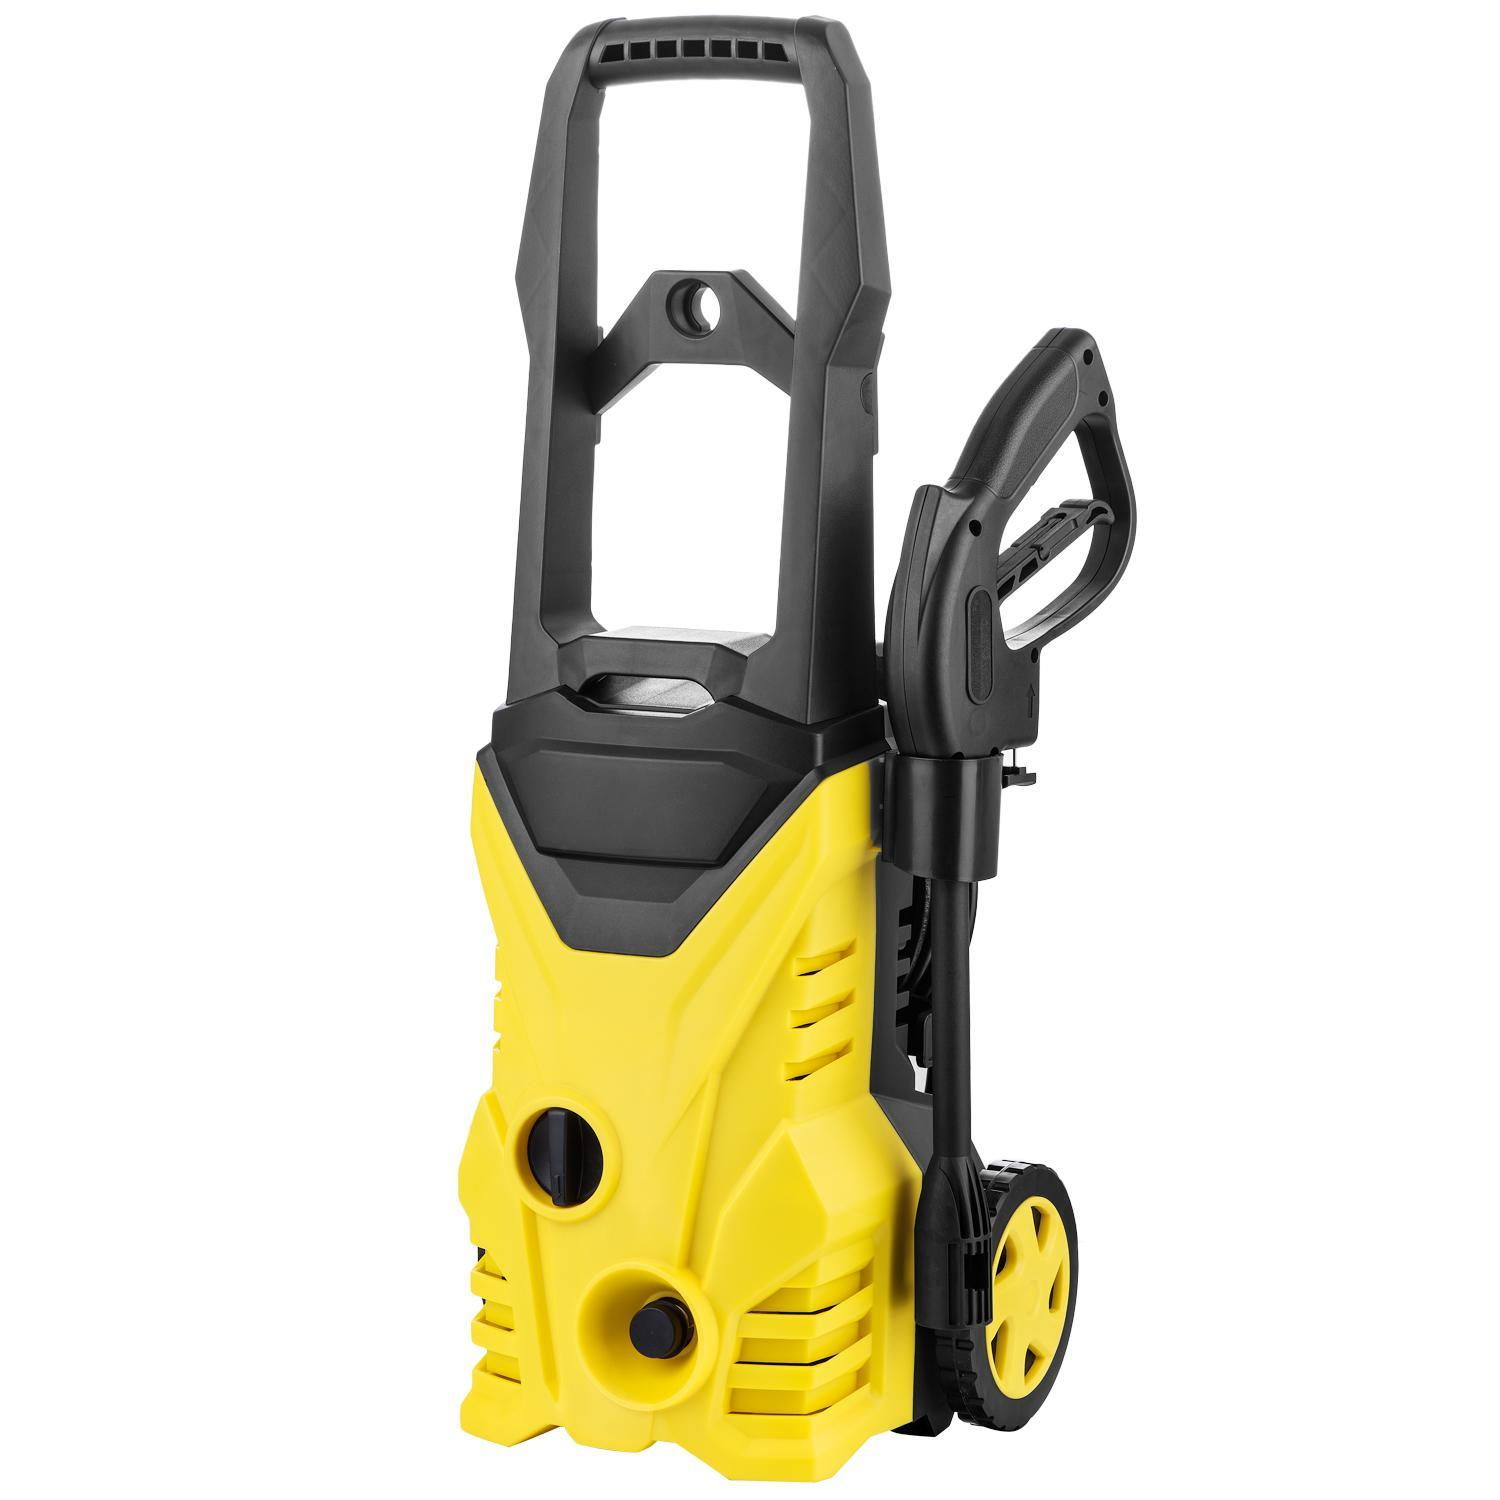 2000 PSI 1.4 GPM Electric Pressure Washer  with Power Hose Nozzle Gun and Soap Dispenser,(2) Spray Nozzle Adapter BLETE